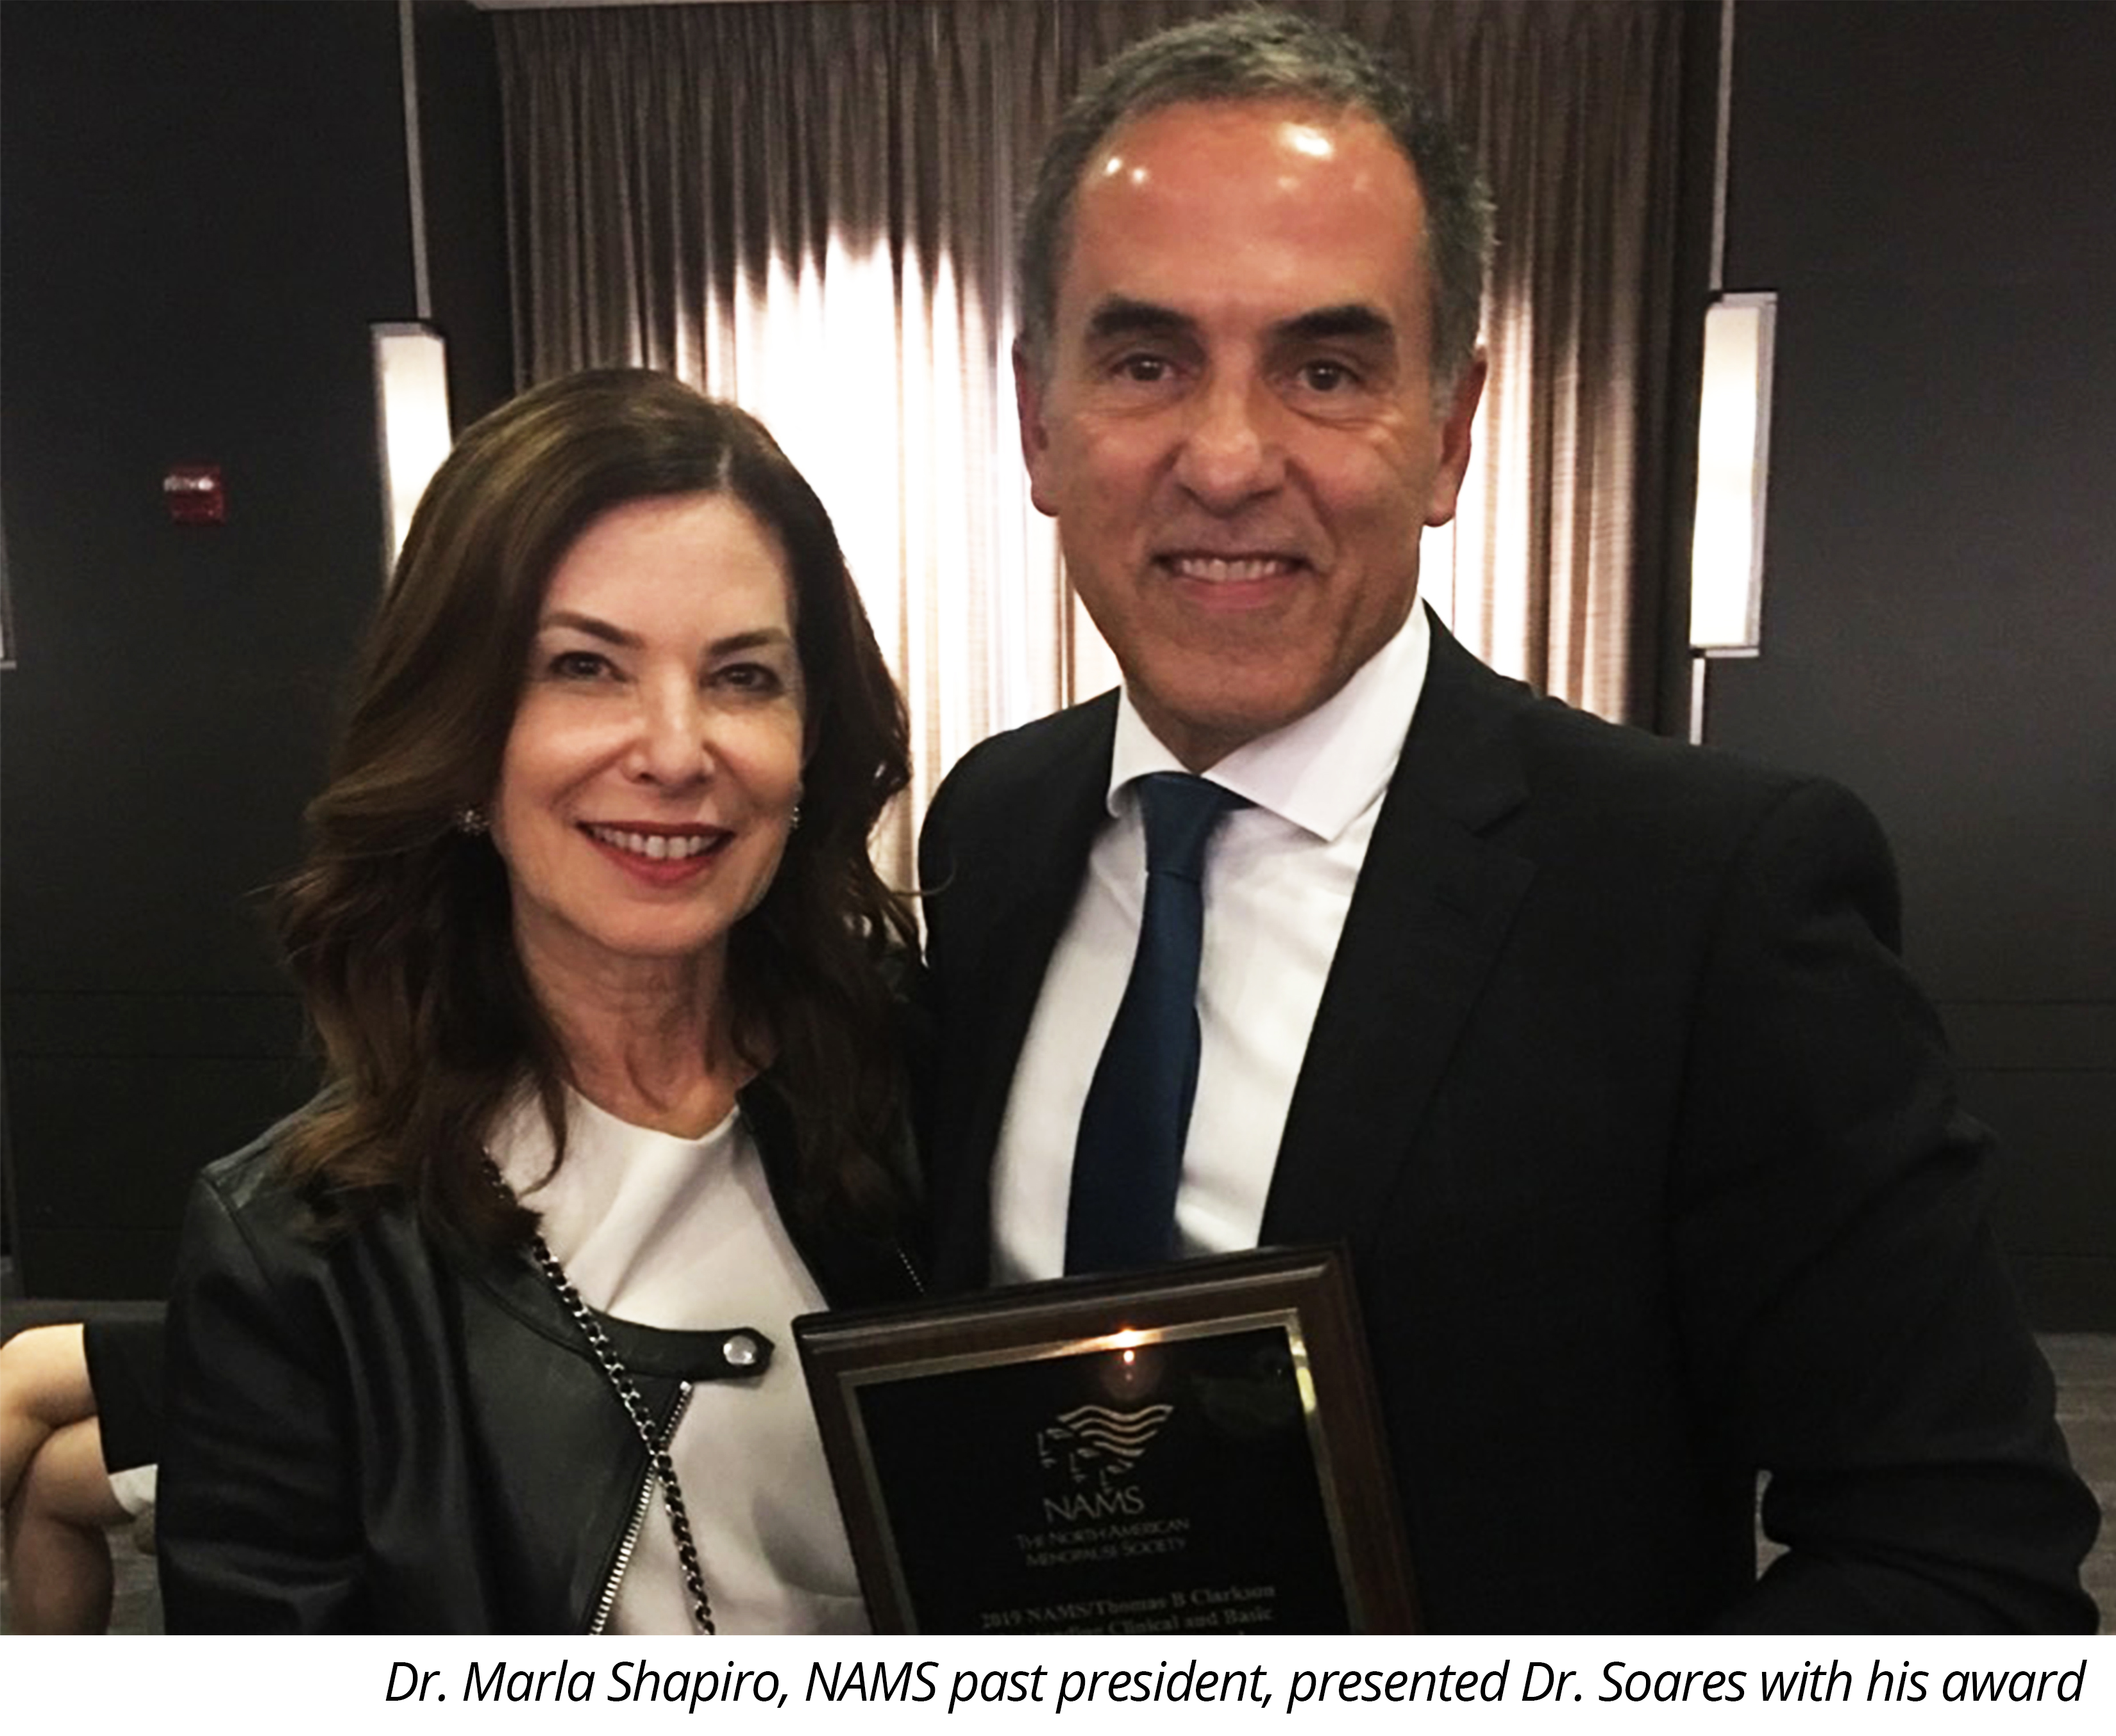 Dr. Marla Shapiro, NAMS past president, presented Dr. Soares with his award